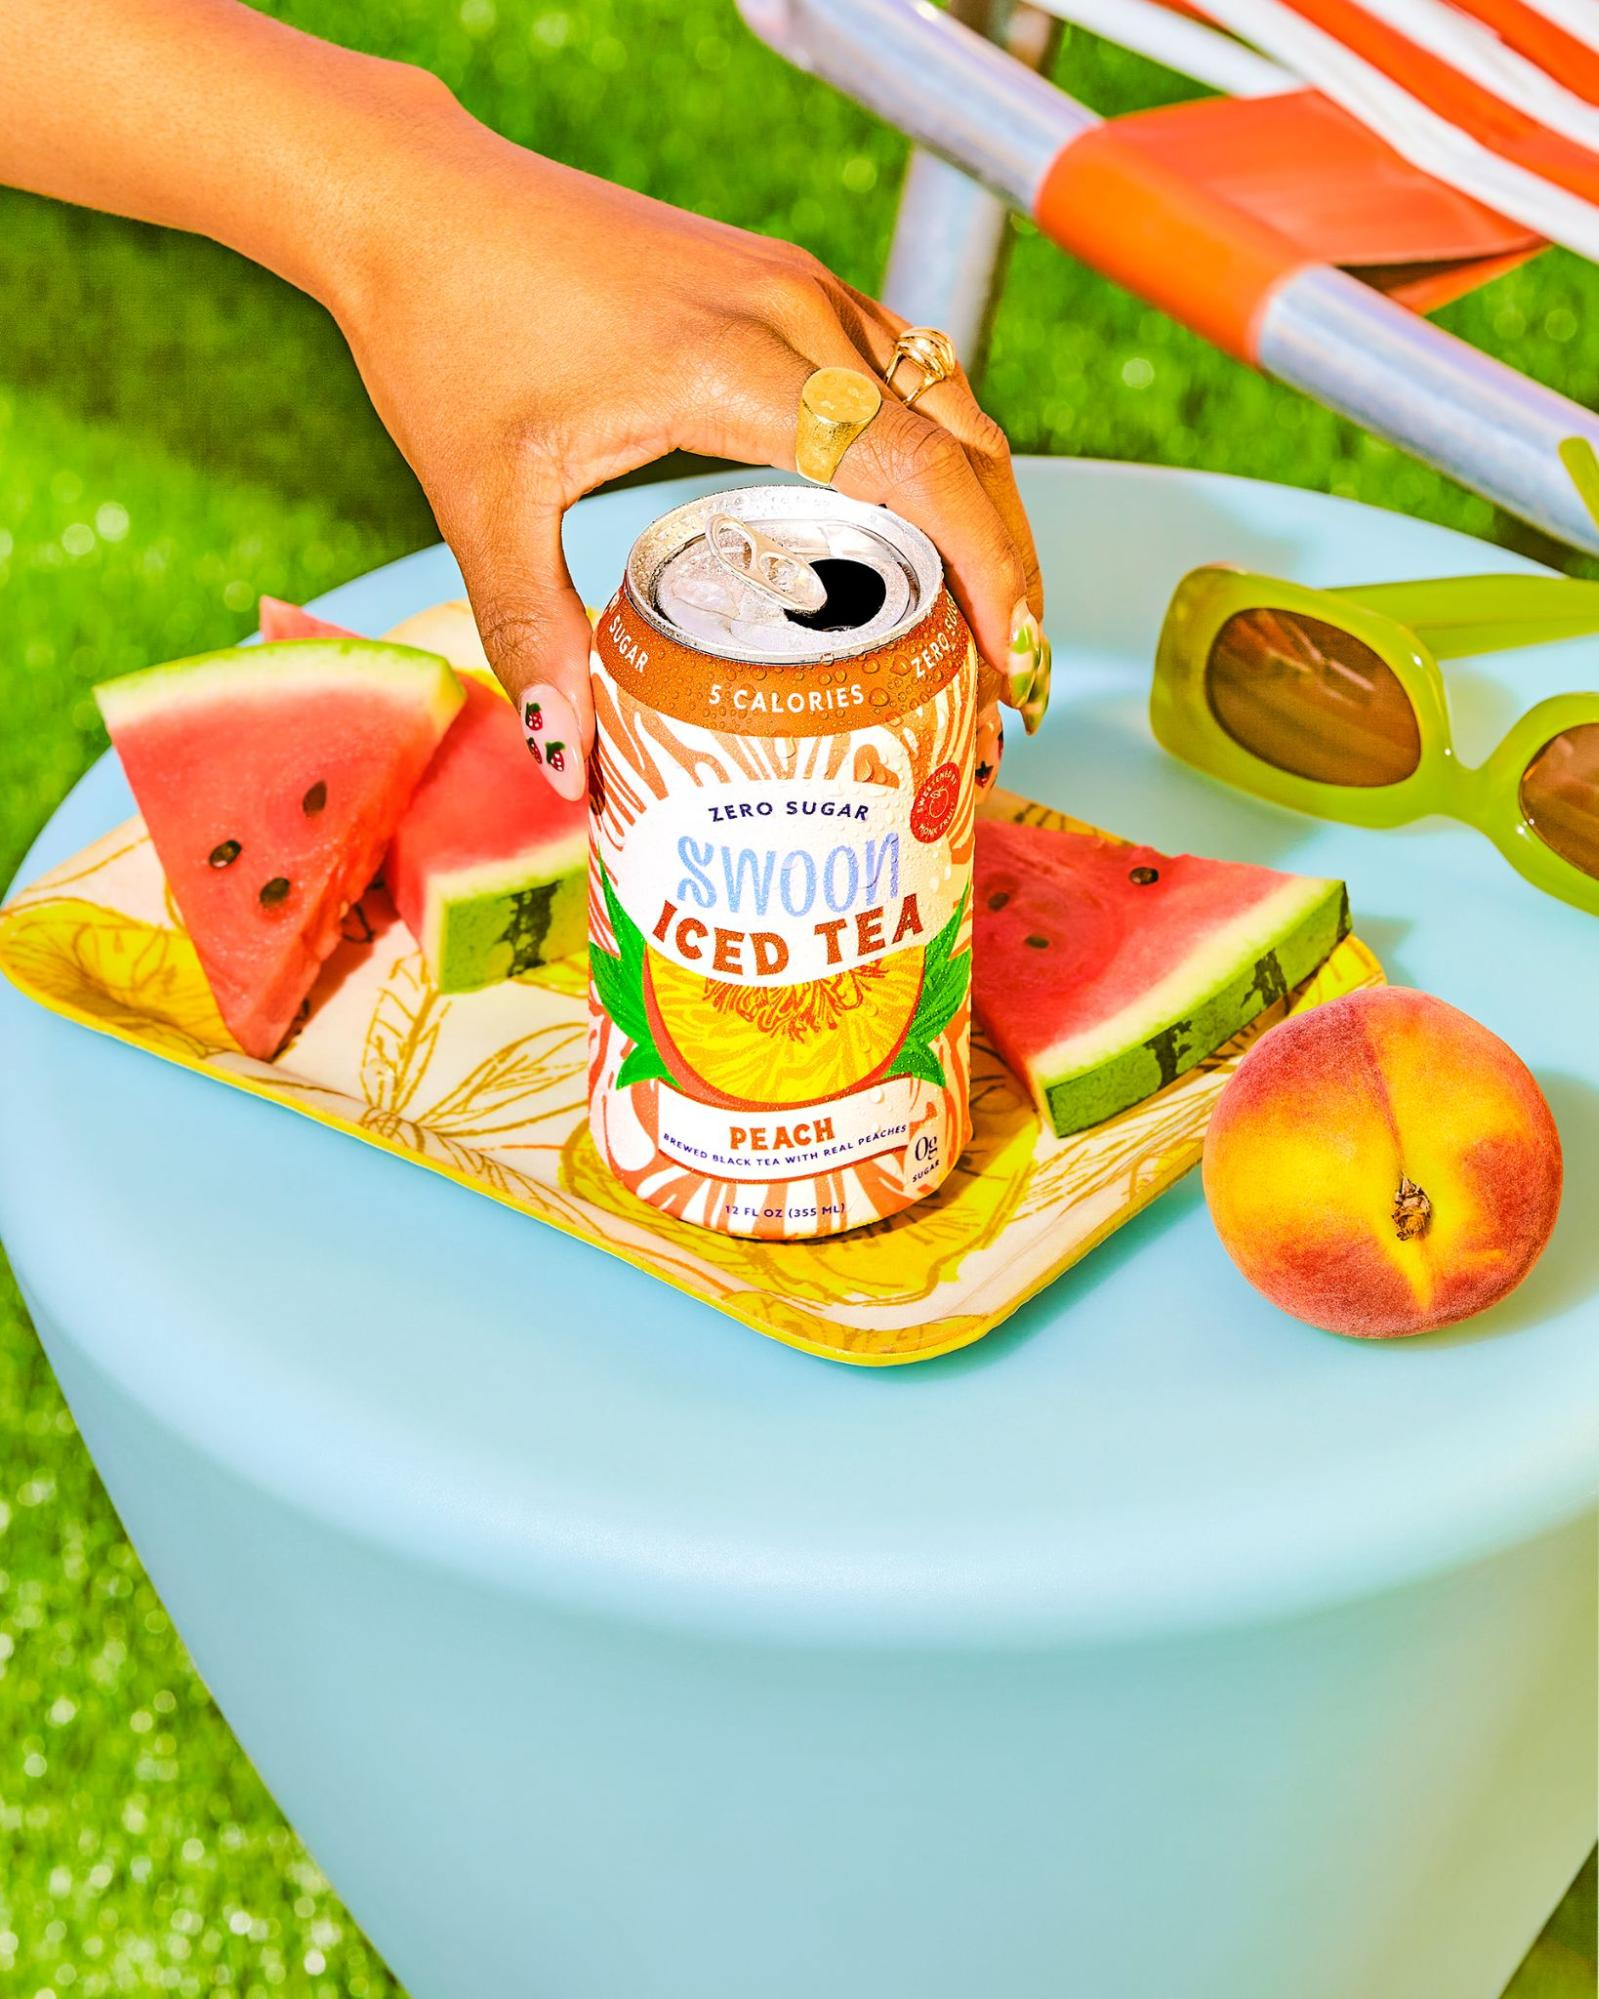 A peach-flavored iced tea by Swoon is placed on a blue table with fruits and sunglasses in the background.